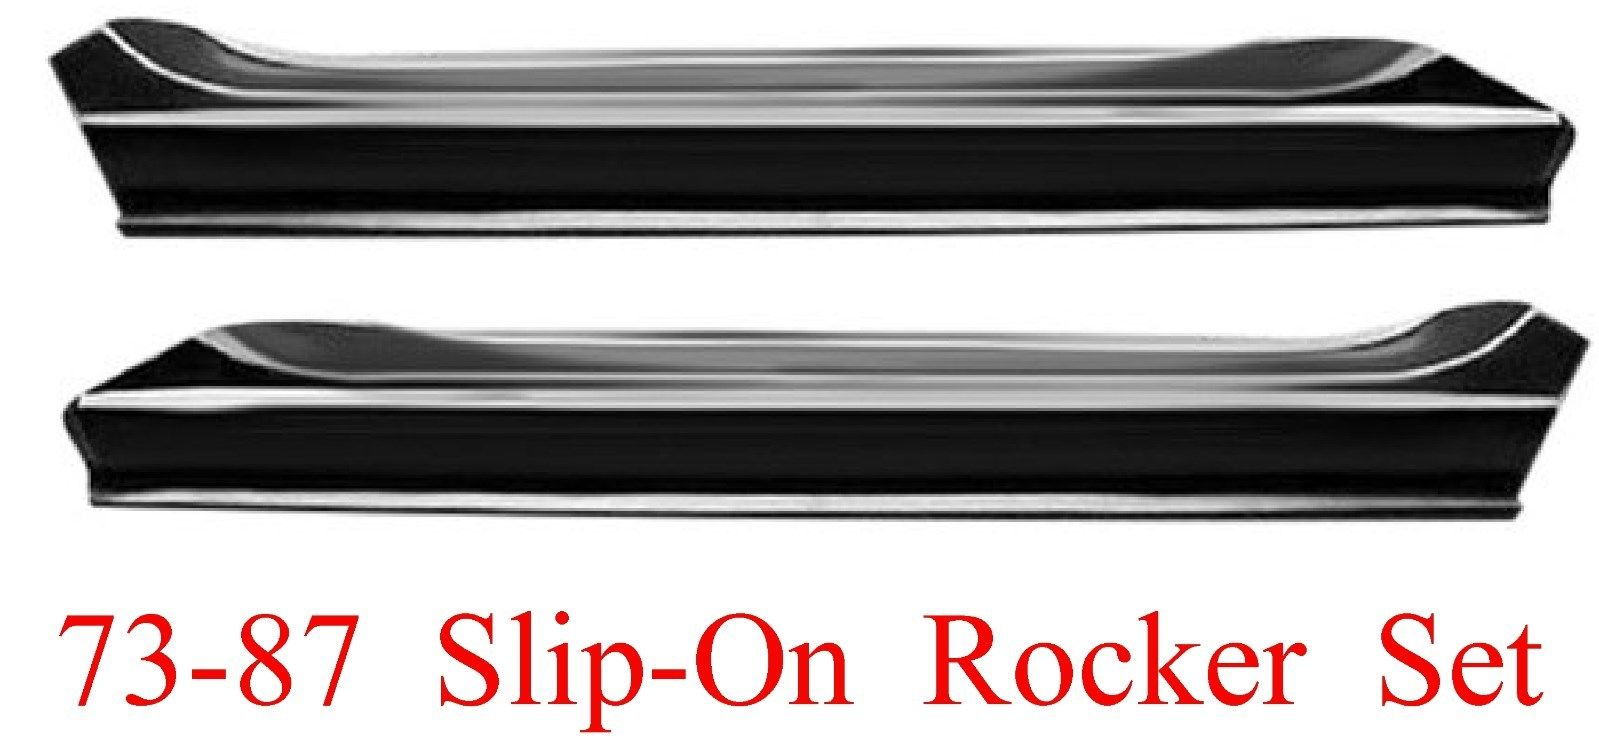 73 87 Slip-On Rocker Panel Set